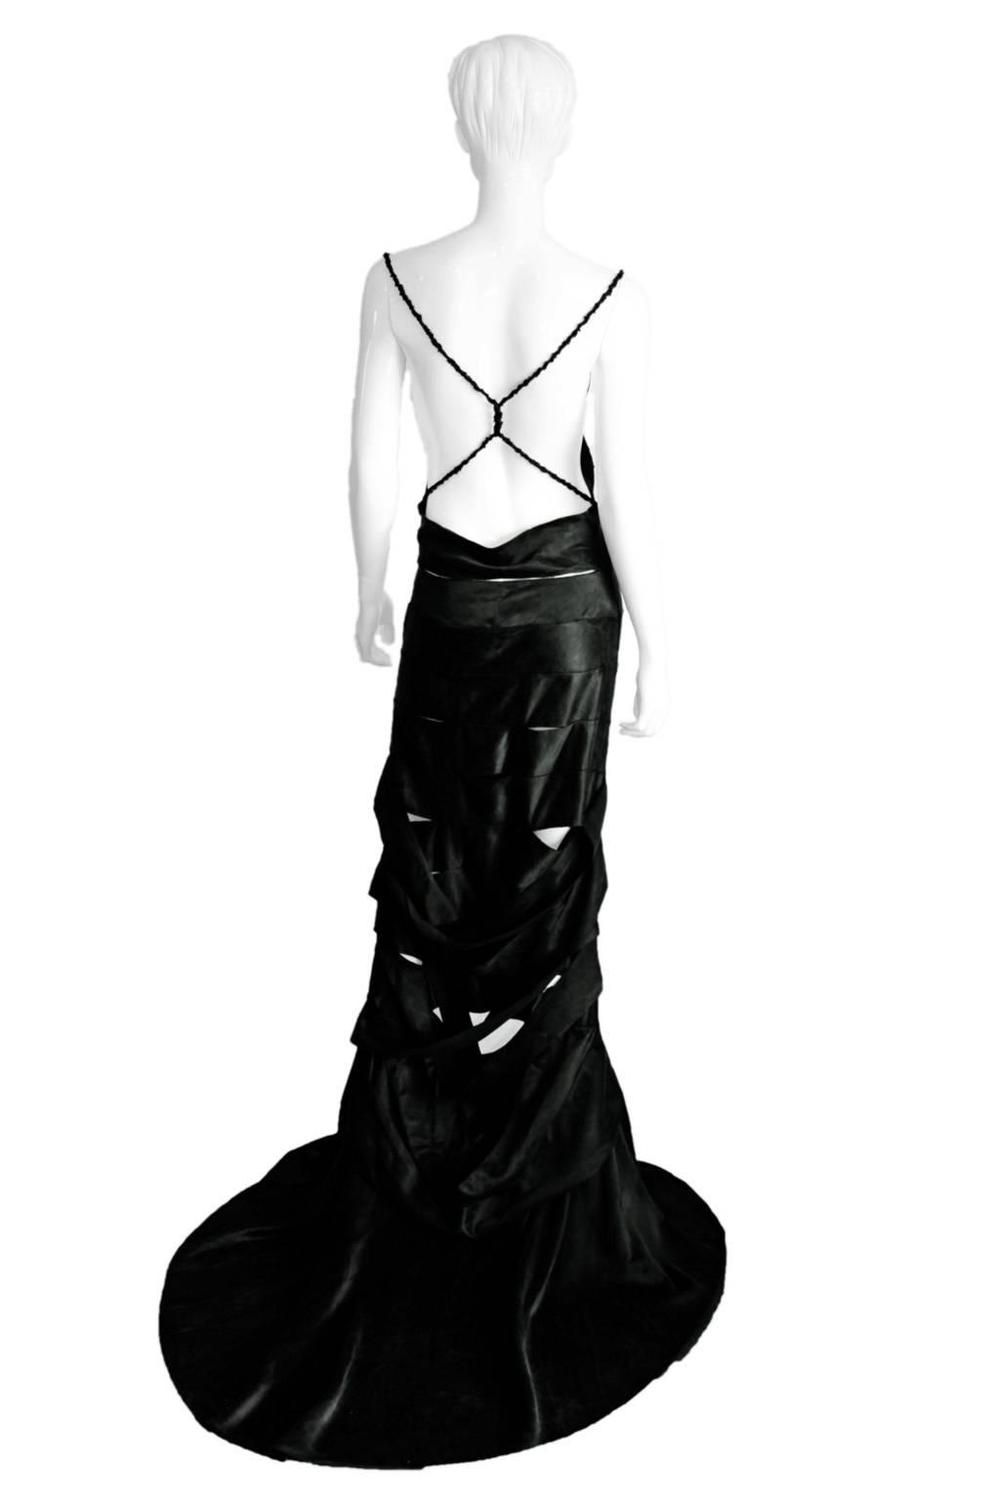 4cbb3ffd2 Uber Rare Tom Ford Gucci 2002 Gothic Collection Black Silk Backless Runway  Gown!   From